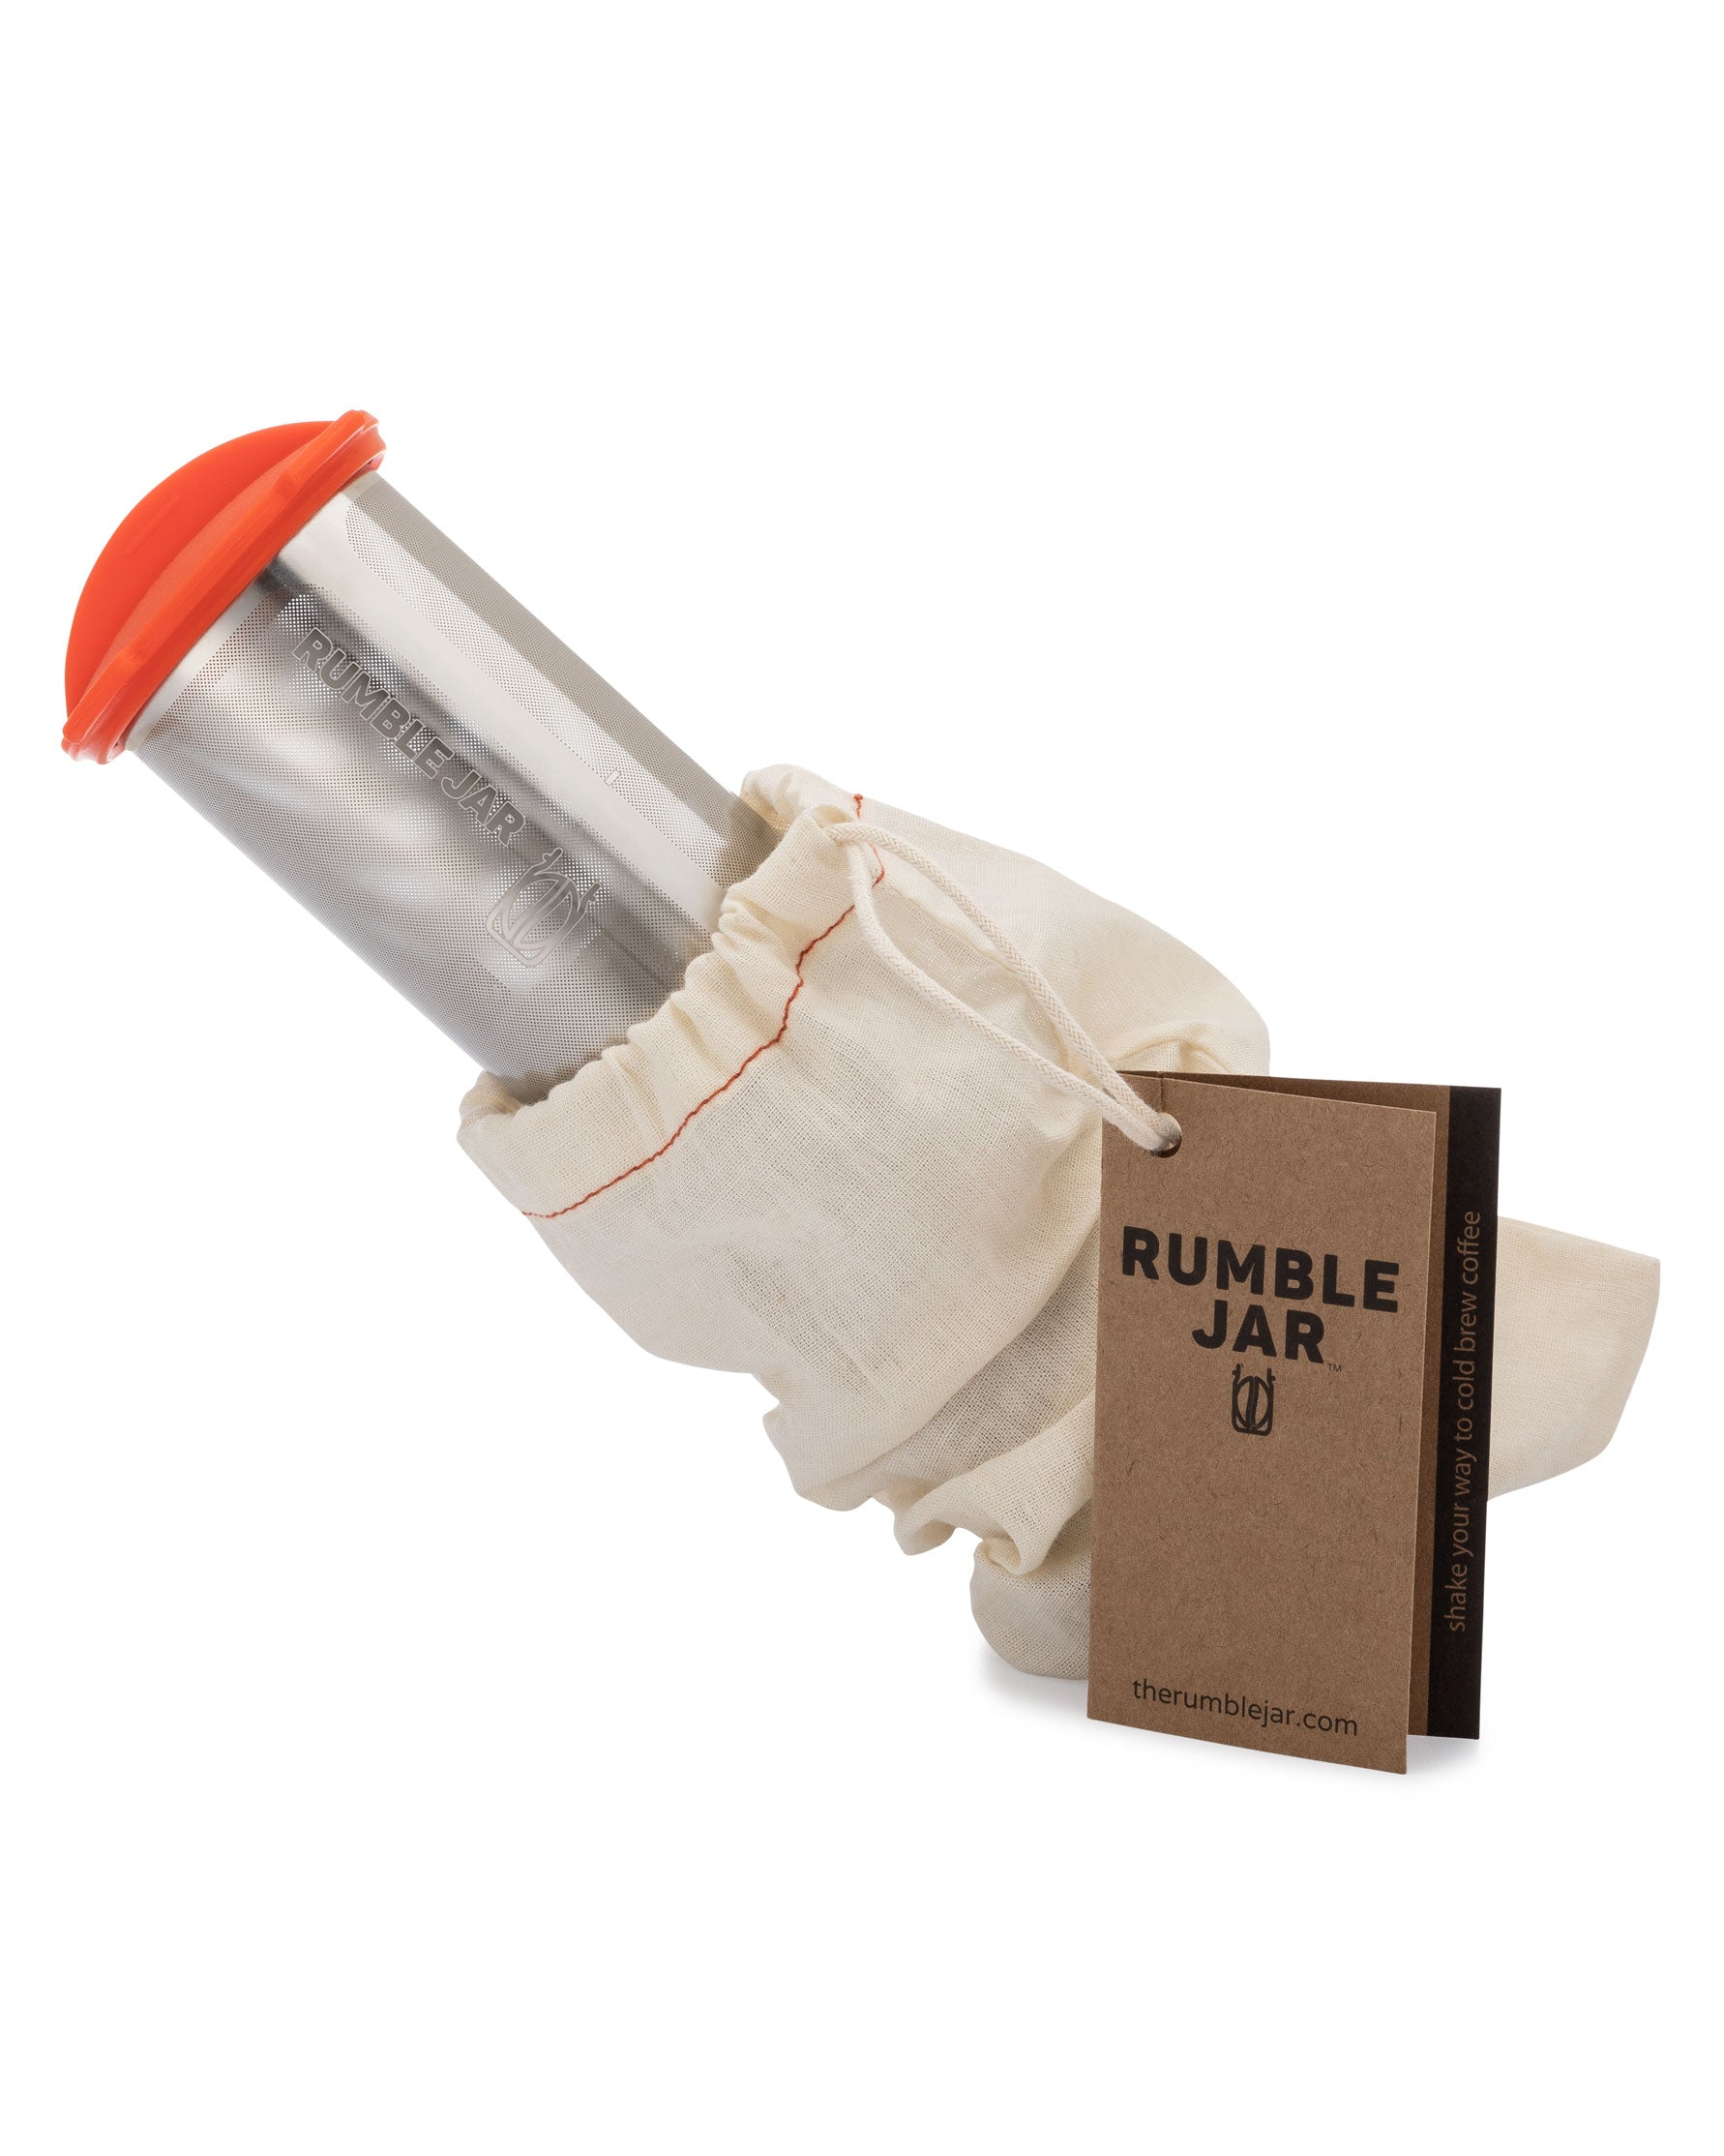 Rumble Jar cold brew coffee filter with orangey-red cap cotton filter sock and hangtag